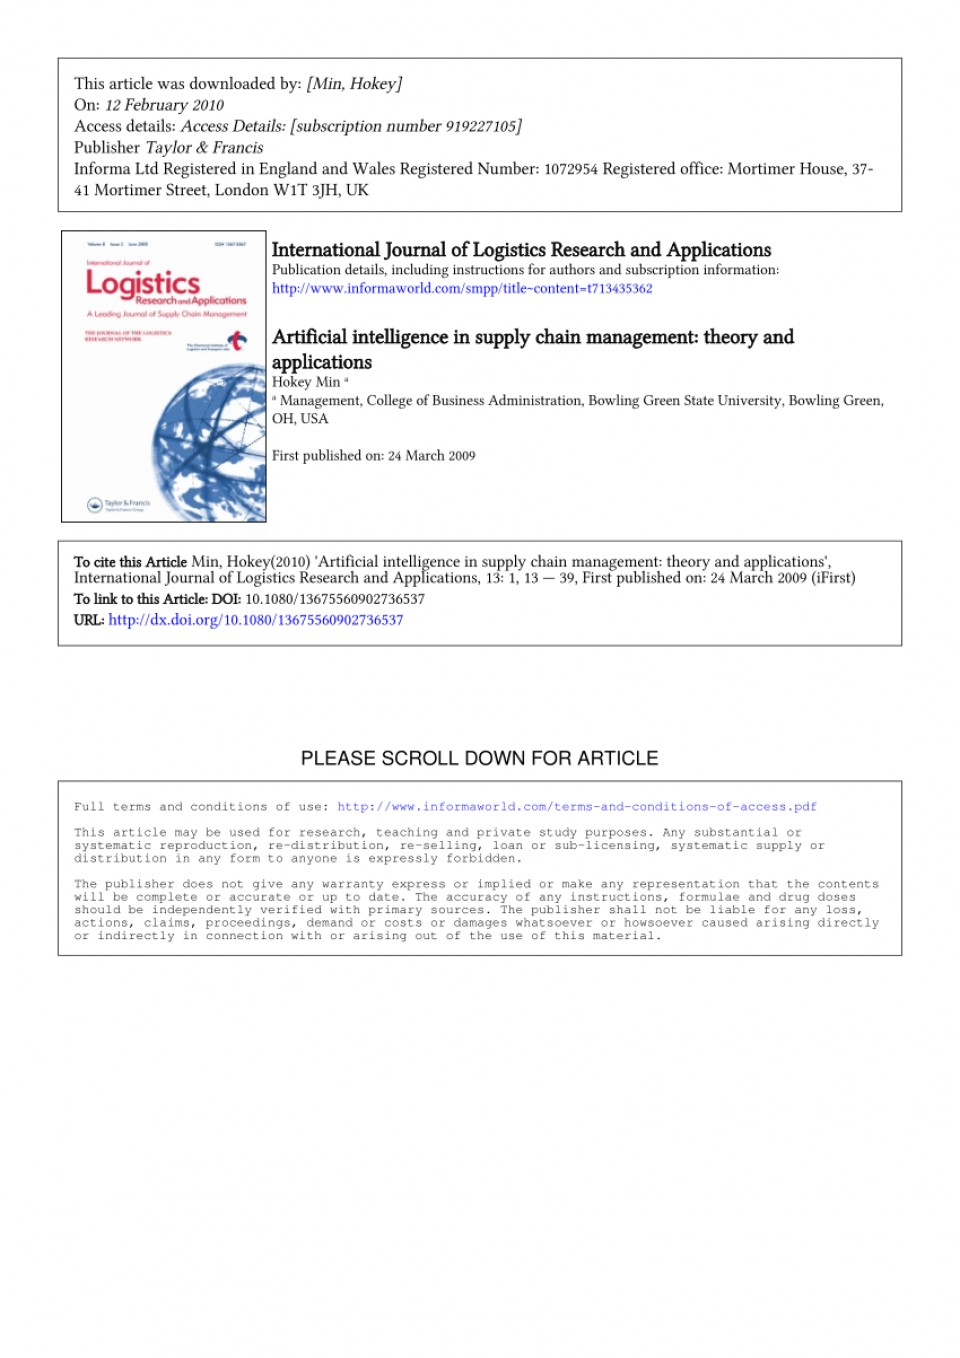 008 Research Paper Artificial Intelligence Papers Download Wonderful 960